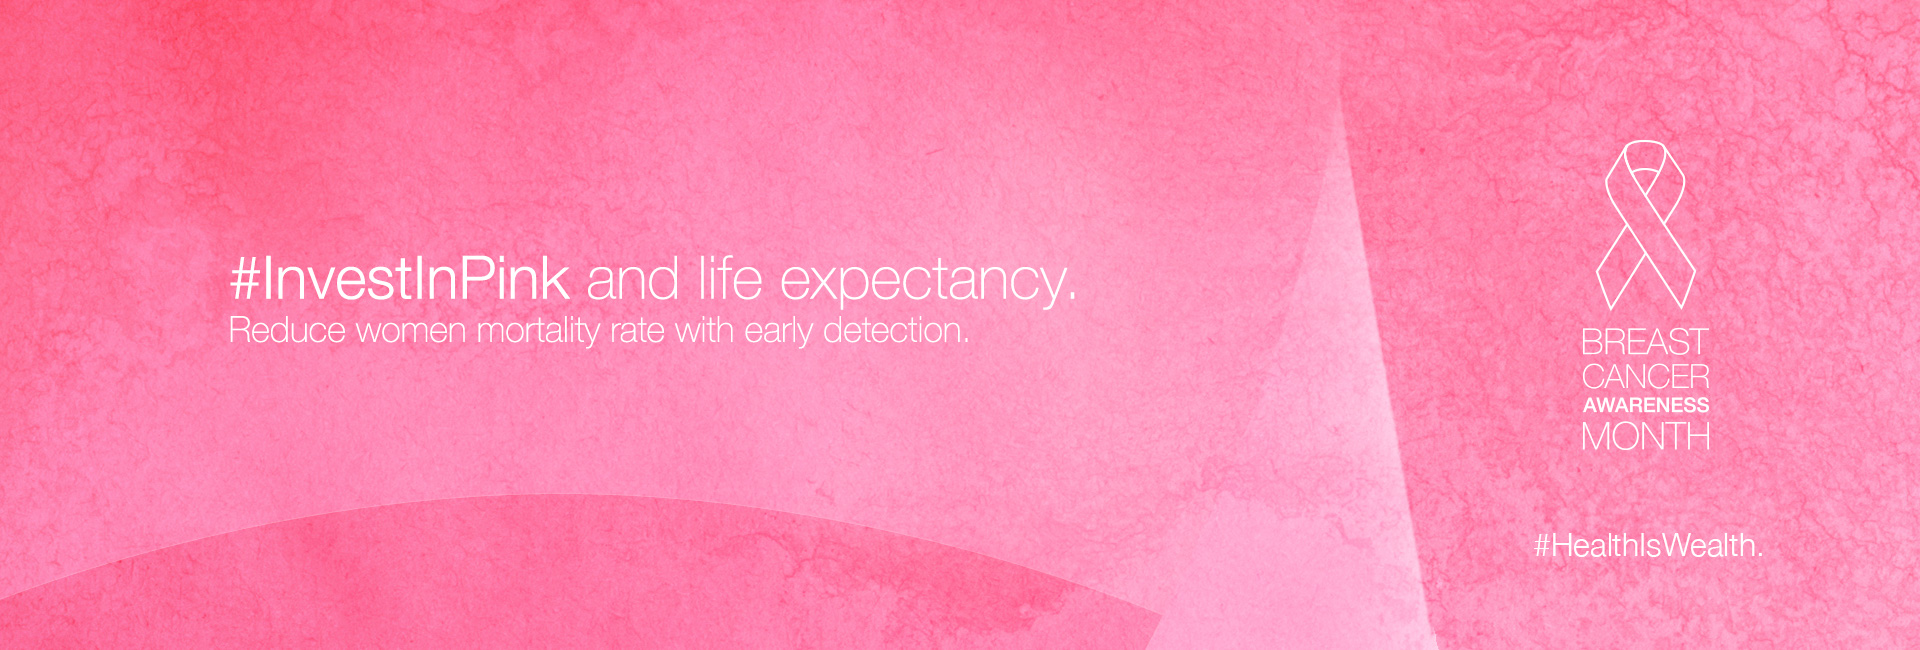 #InvestInPink and life expectancy (WEBSITE)